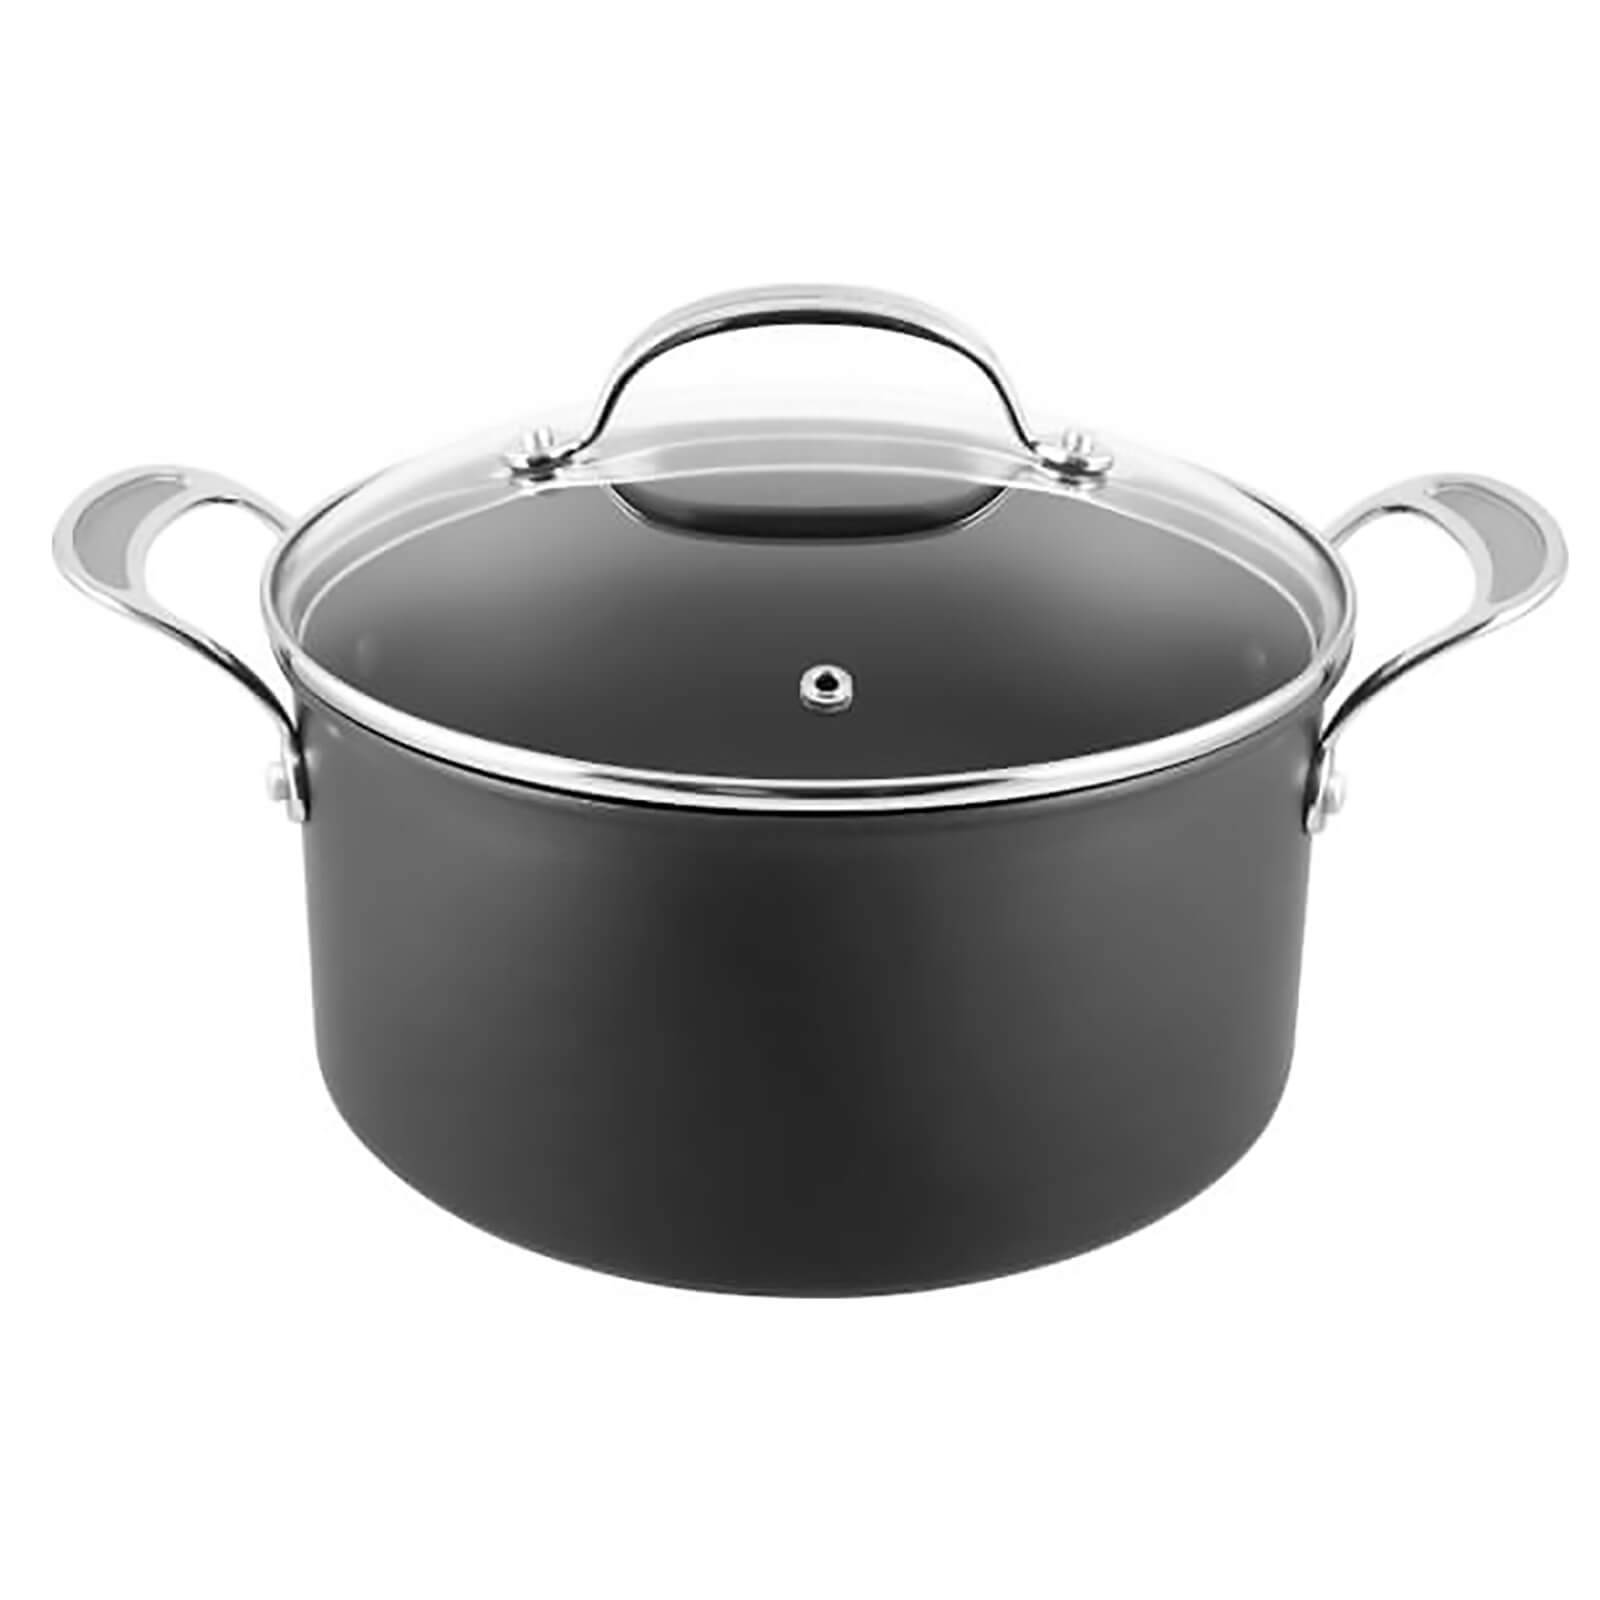 Tefal Jamie Oliver by Tefal Hard Anodised Non-Stick Stewpot with Lid - 24cm